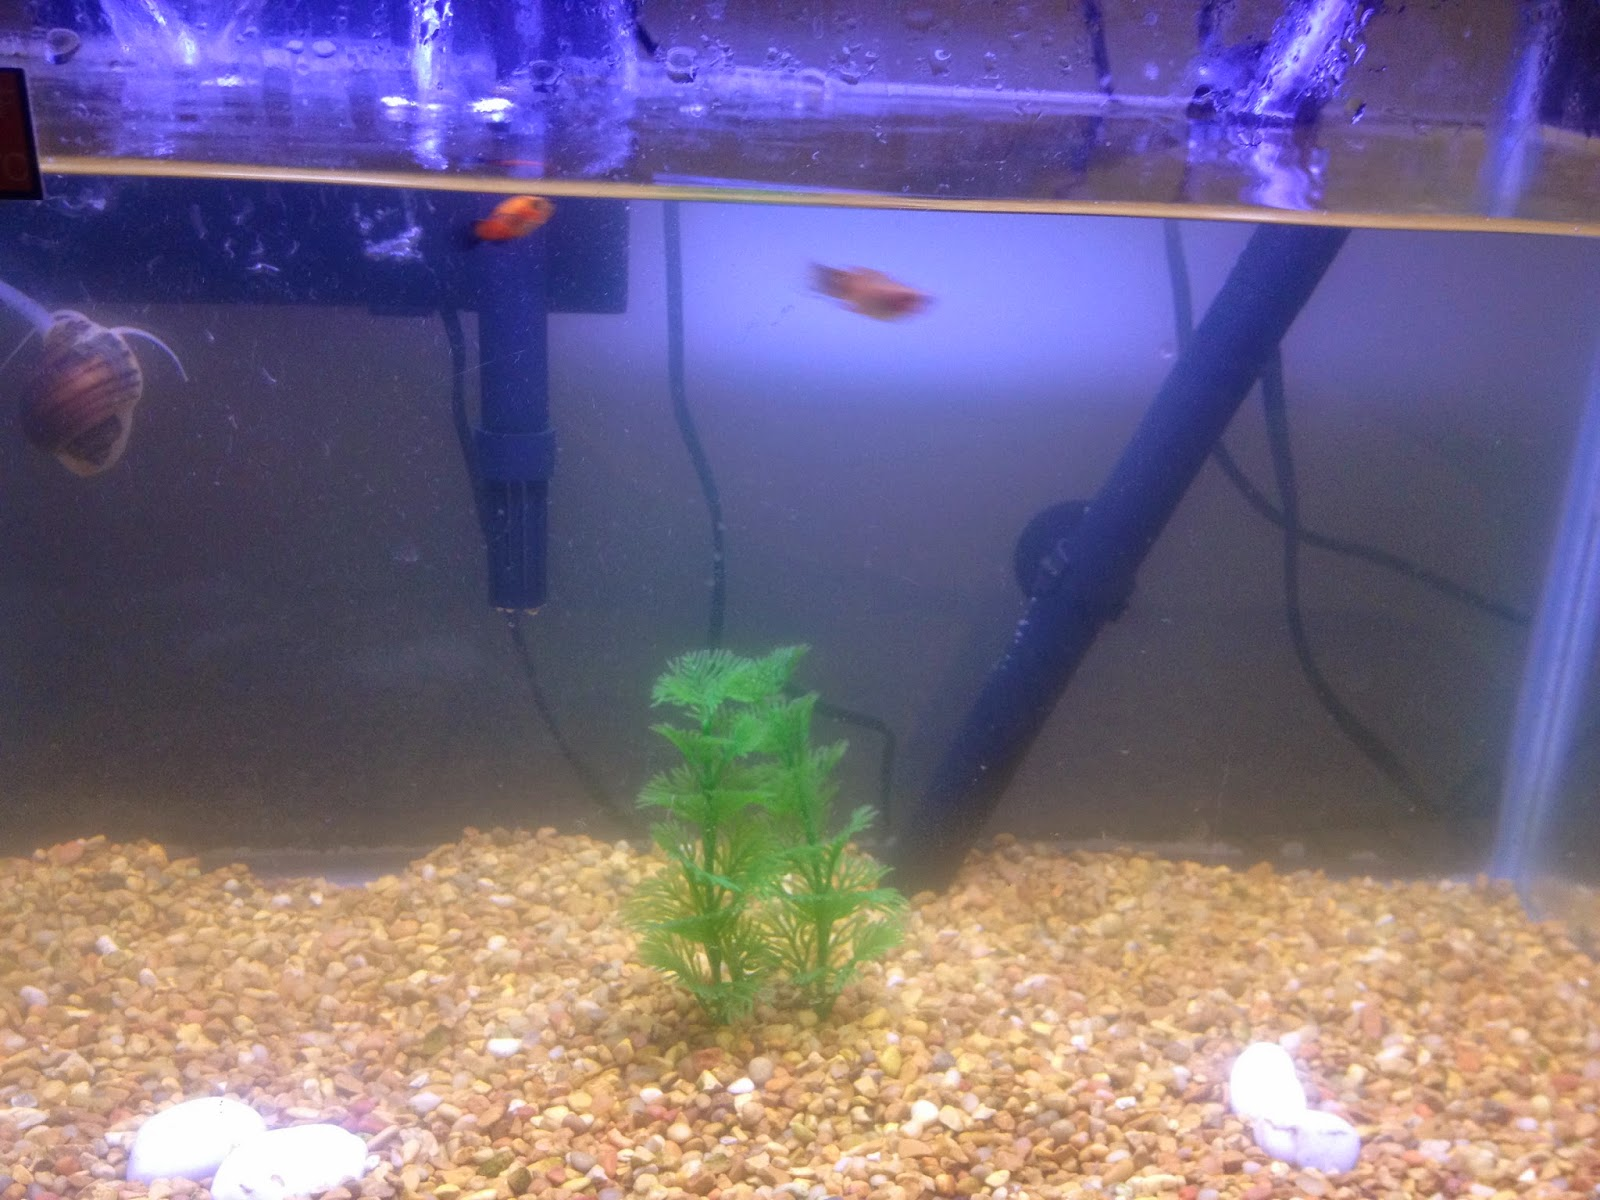 Freshwater fish no filter - It Does Allow For A Quick Fix But Soon Enough Your Tank Will Be As Green As It Was Before In No Time